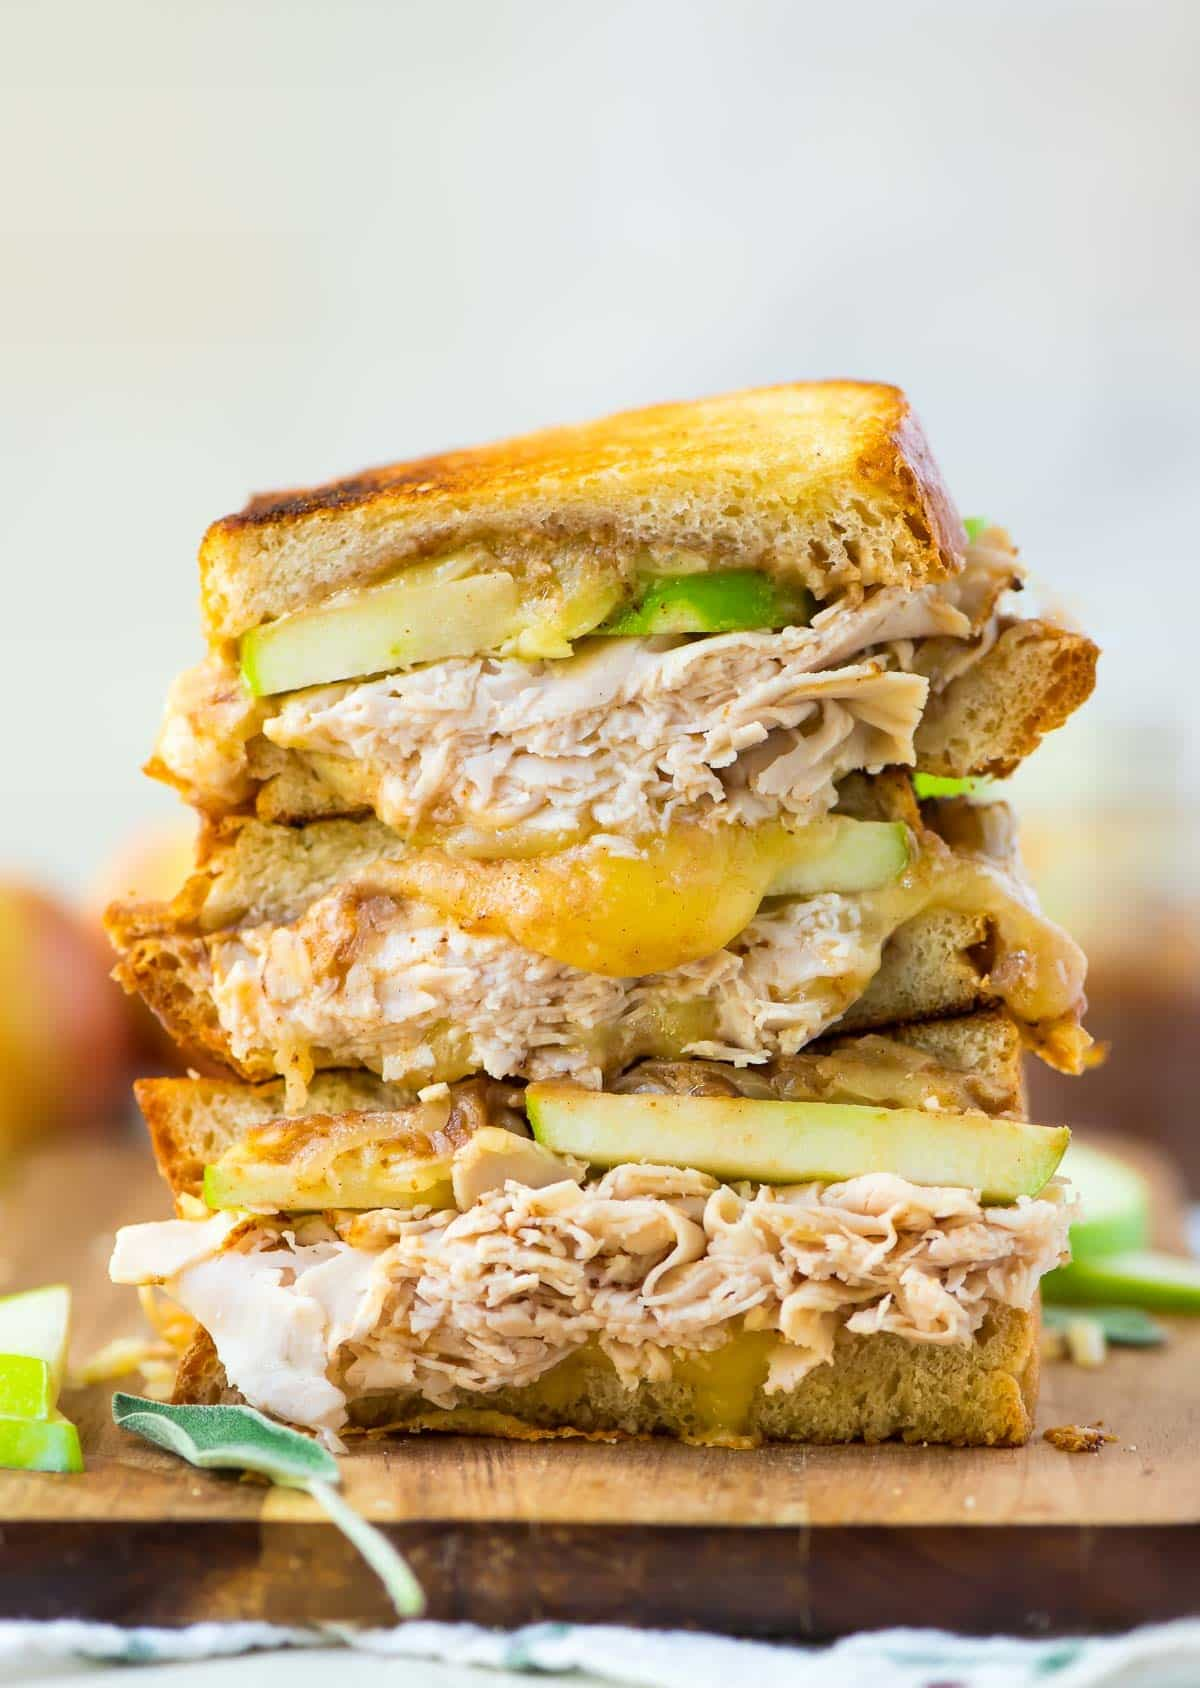 Apple Grilled Cheese with Turkey, Cheddar, and Apple Butter